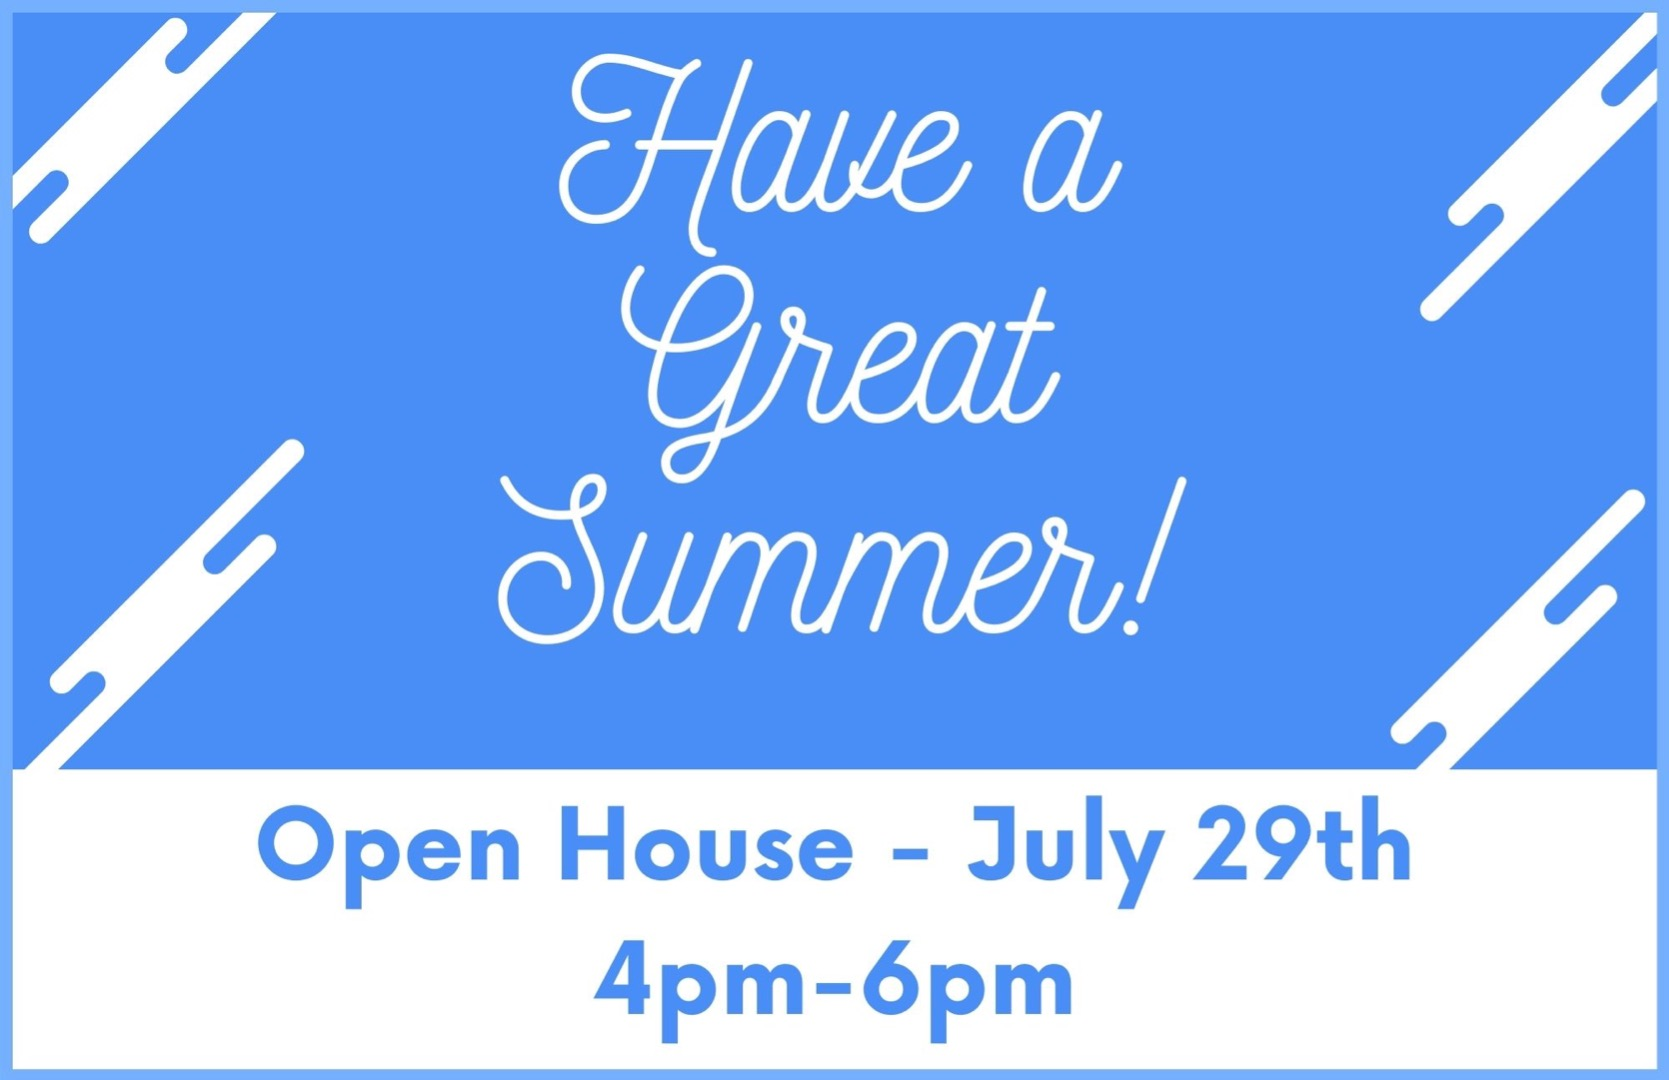 Open House Juley 29th